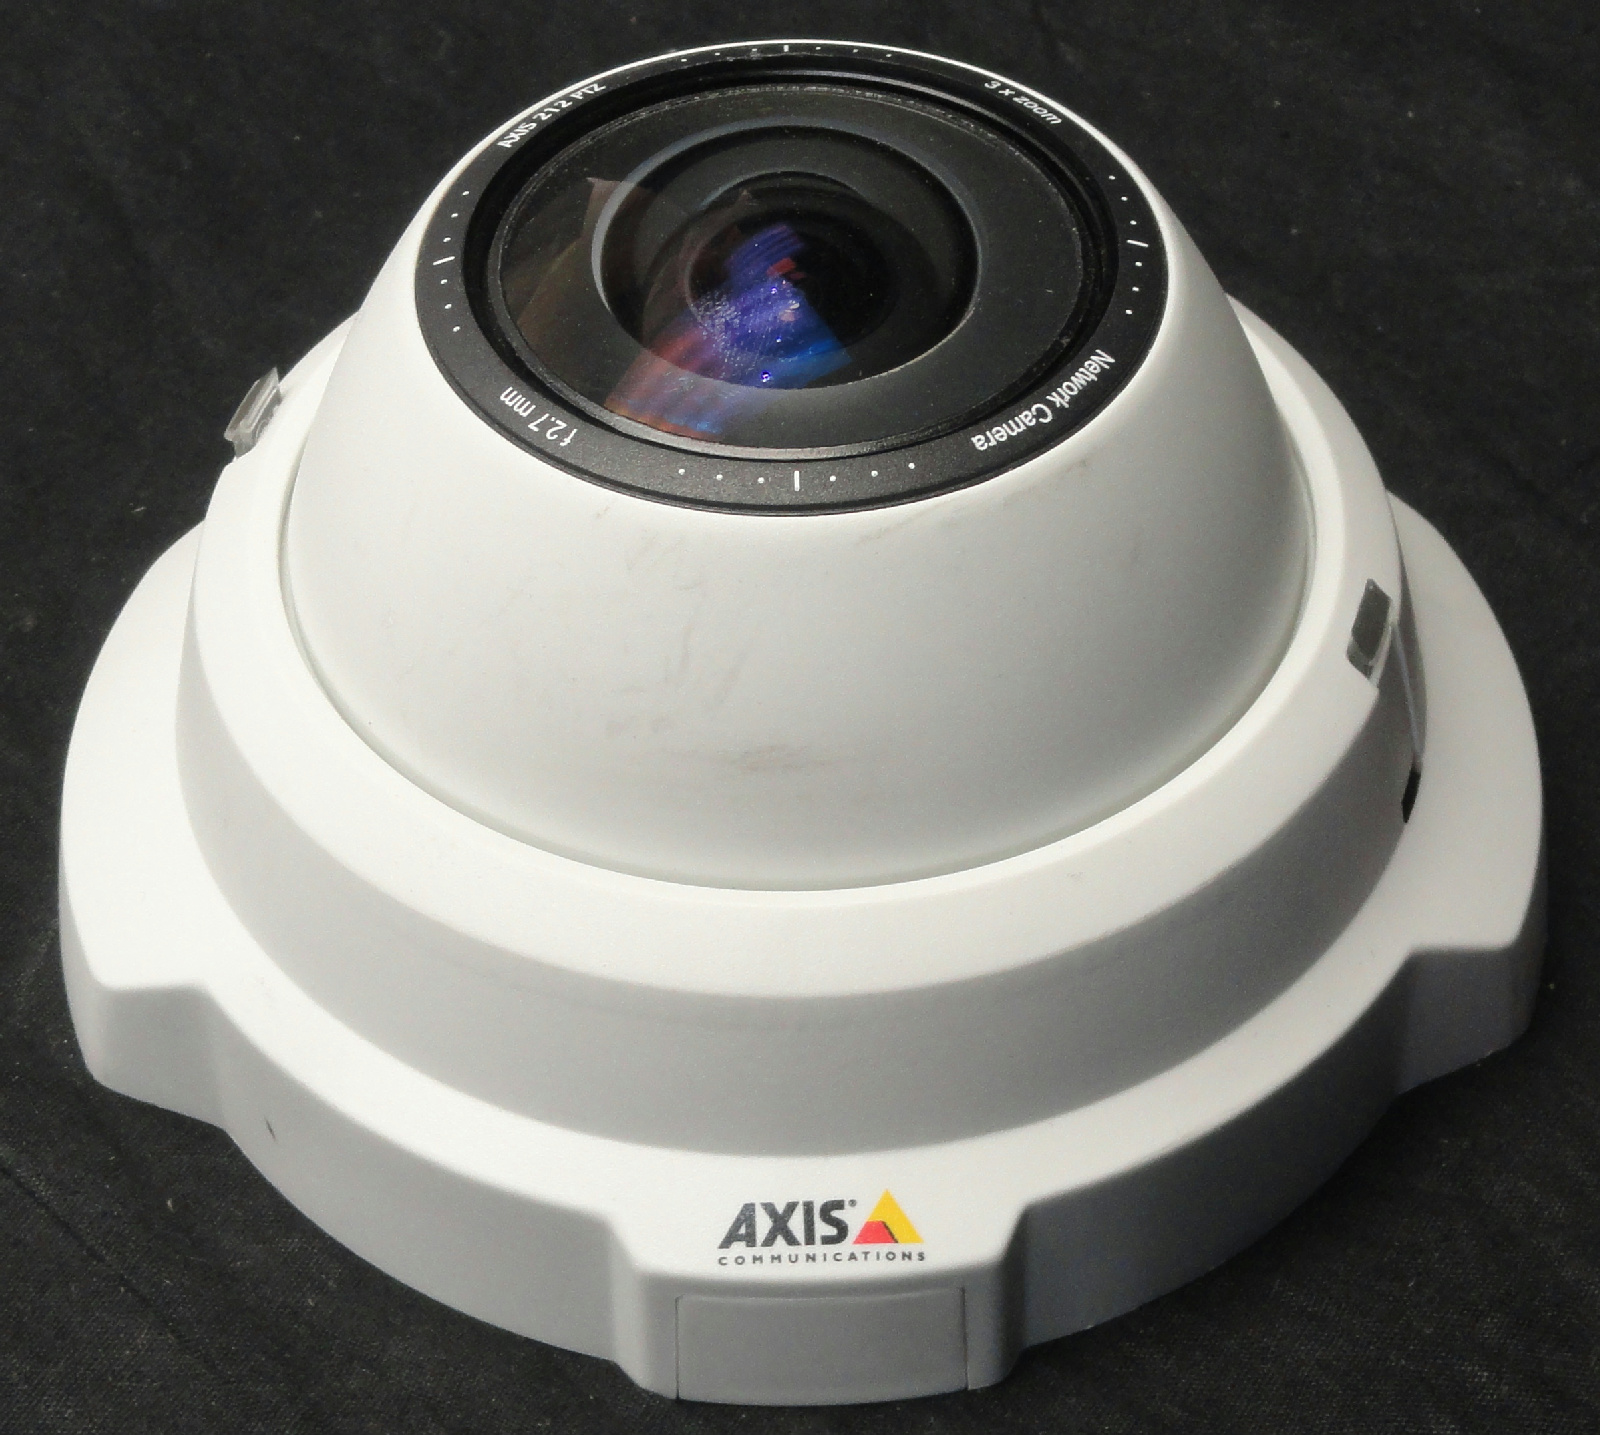 axis 212 ptz 480p poe ip camera ebay. Black Bedroom Furniture Sets. Home Design Ideas